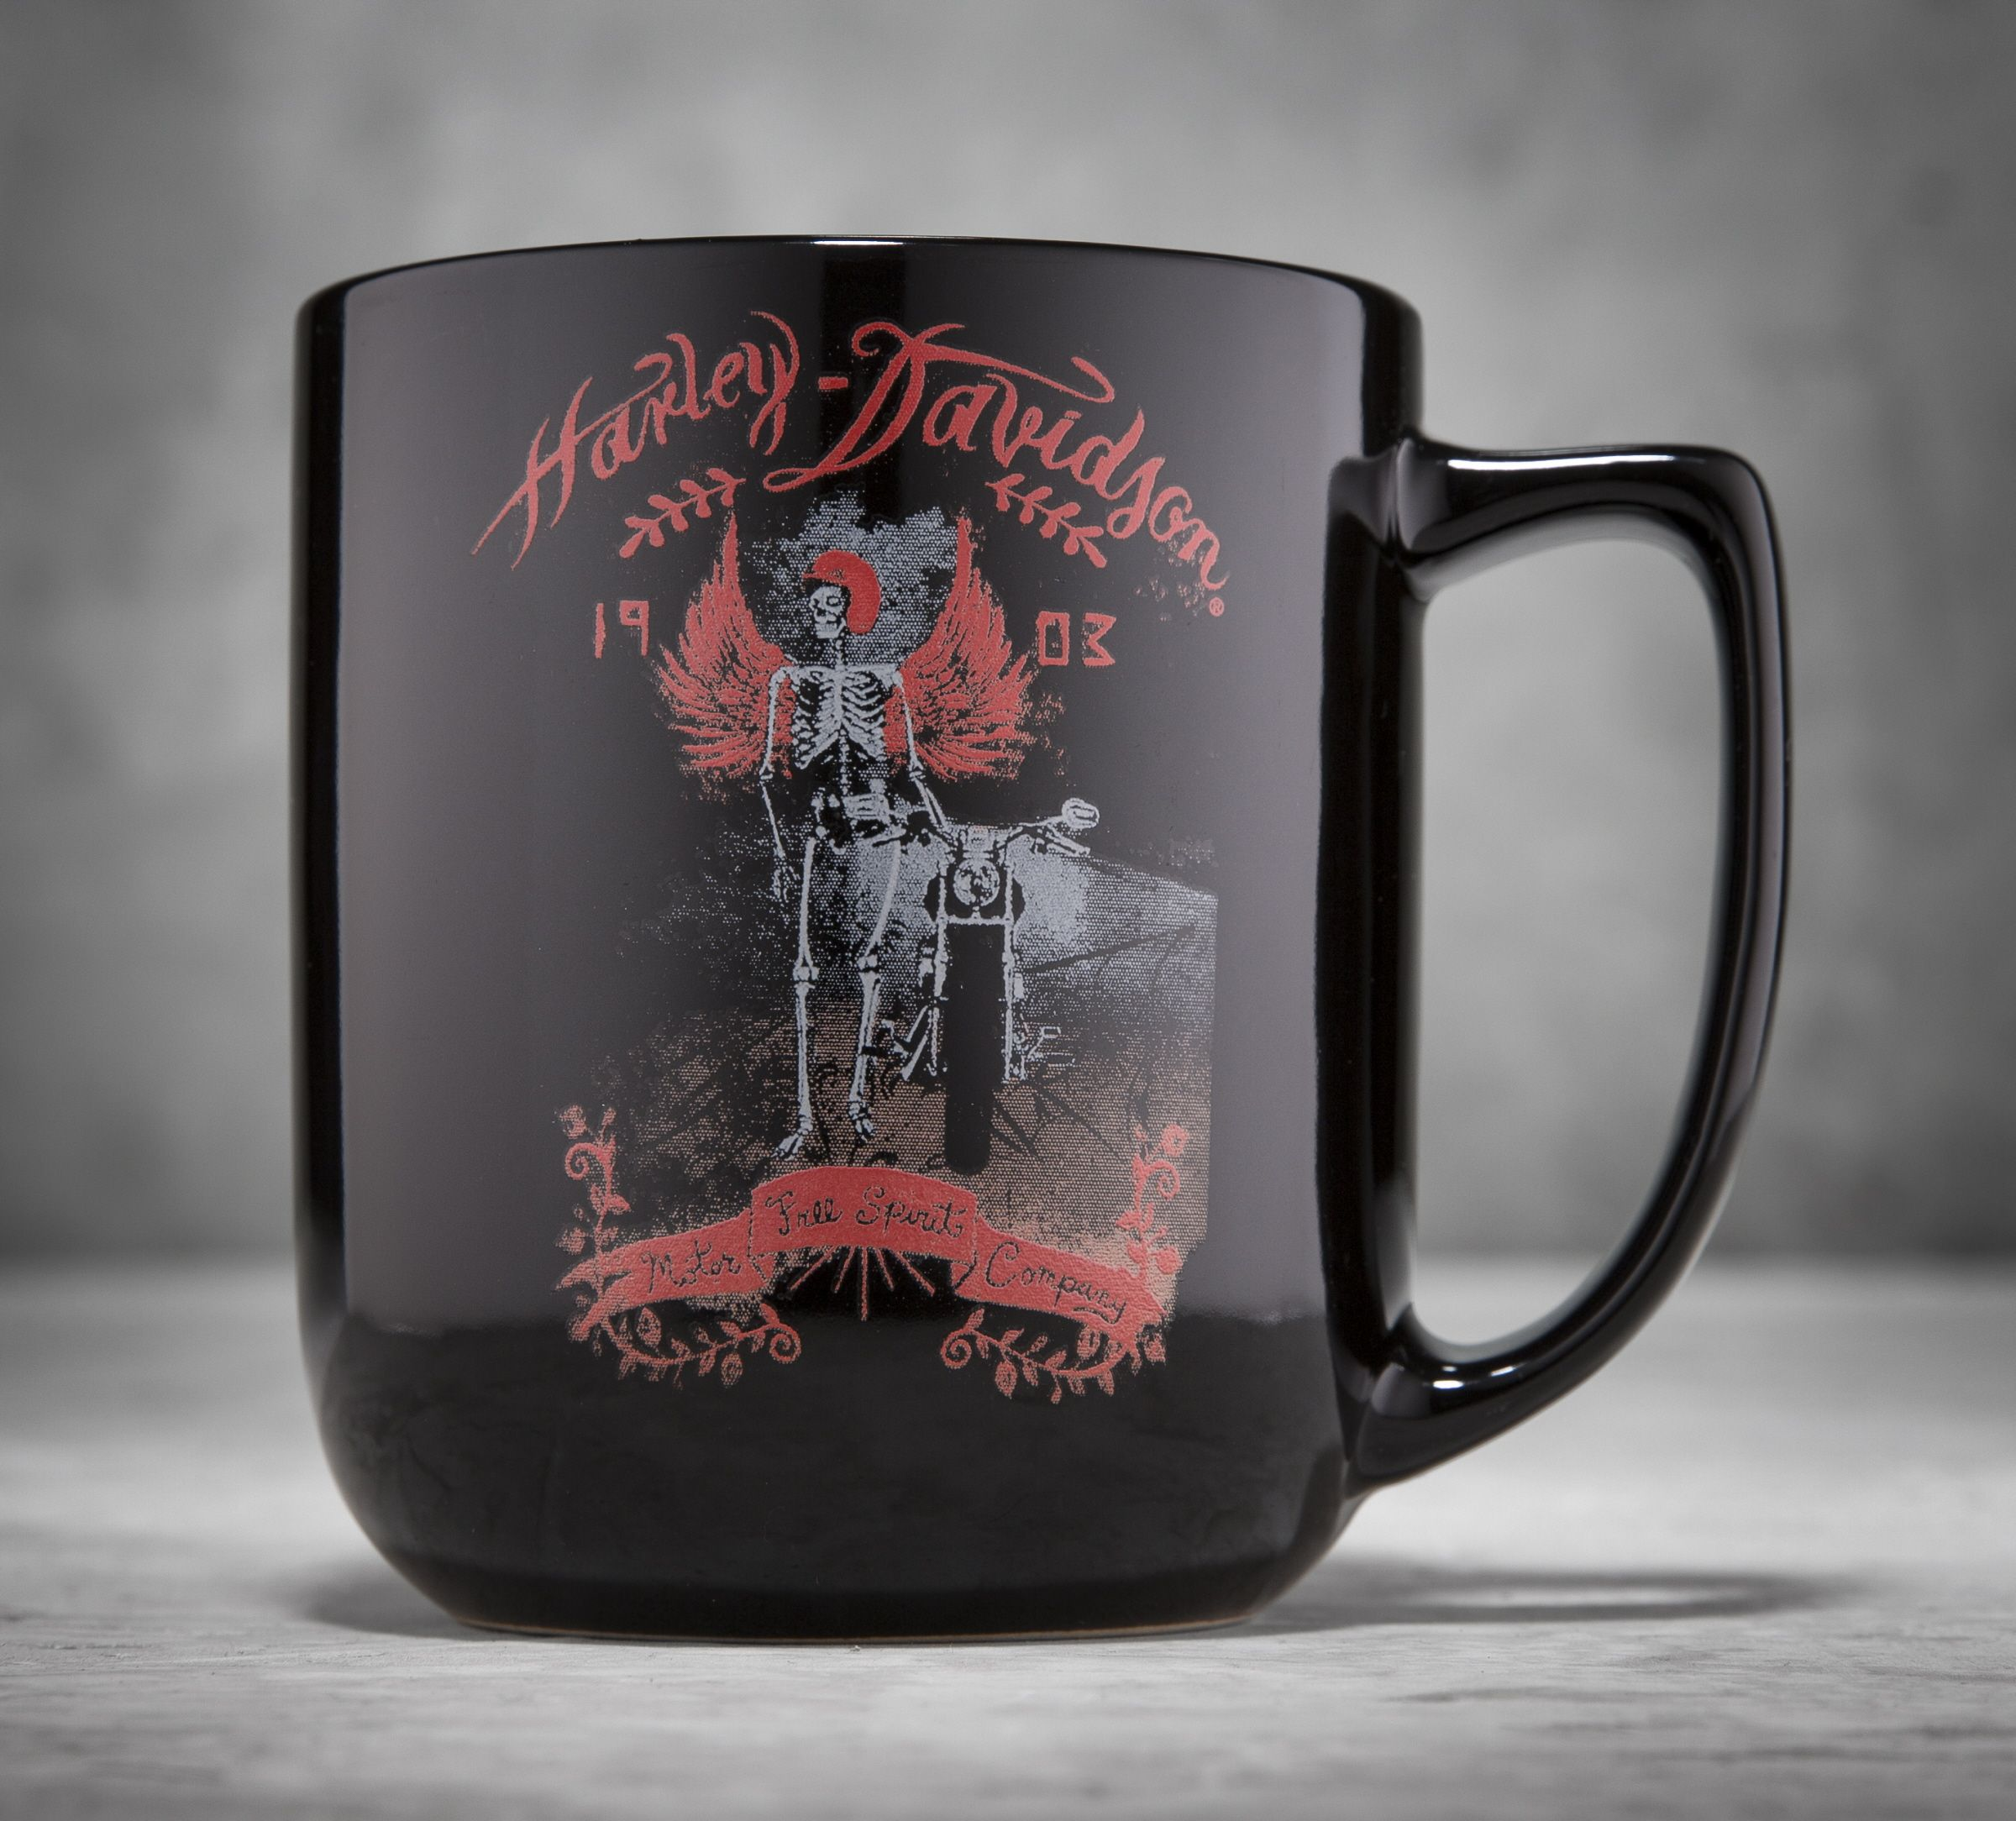 Take a sip from this 17 ounce coffee mug and you'll feel